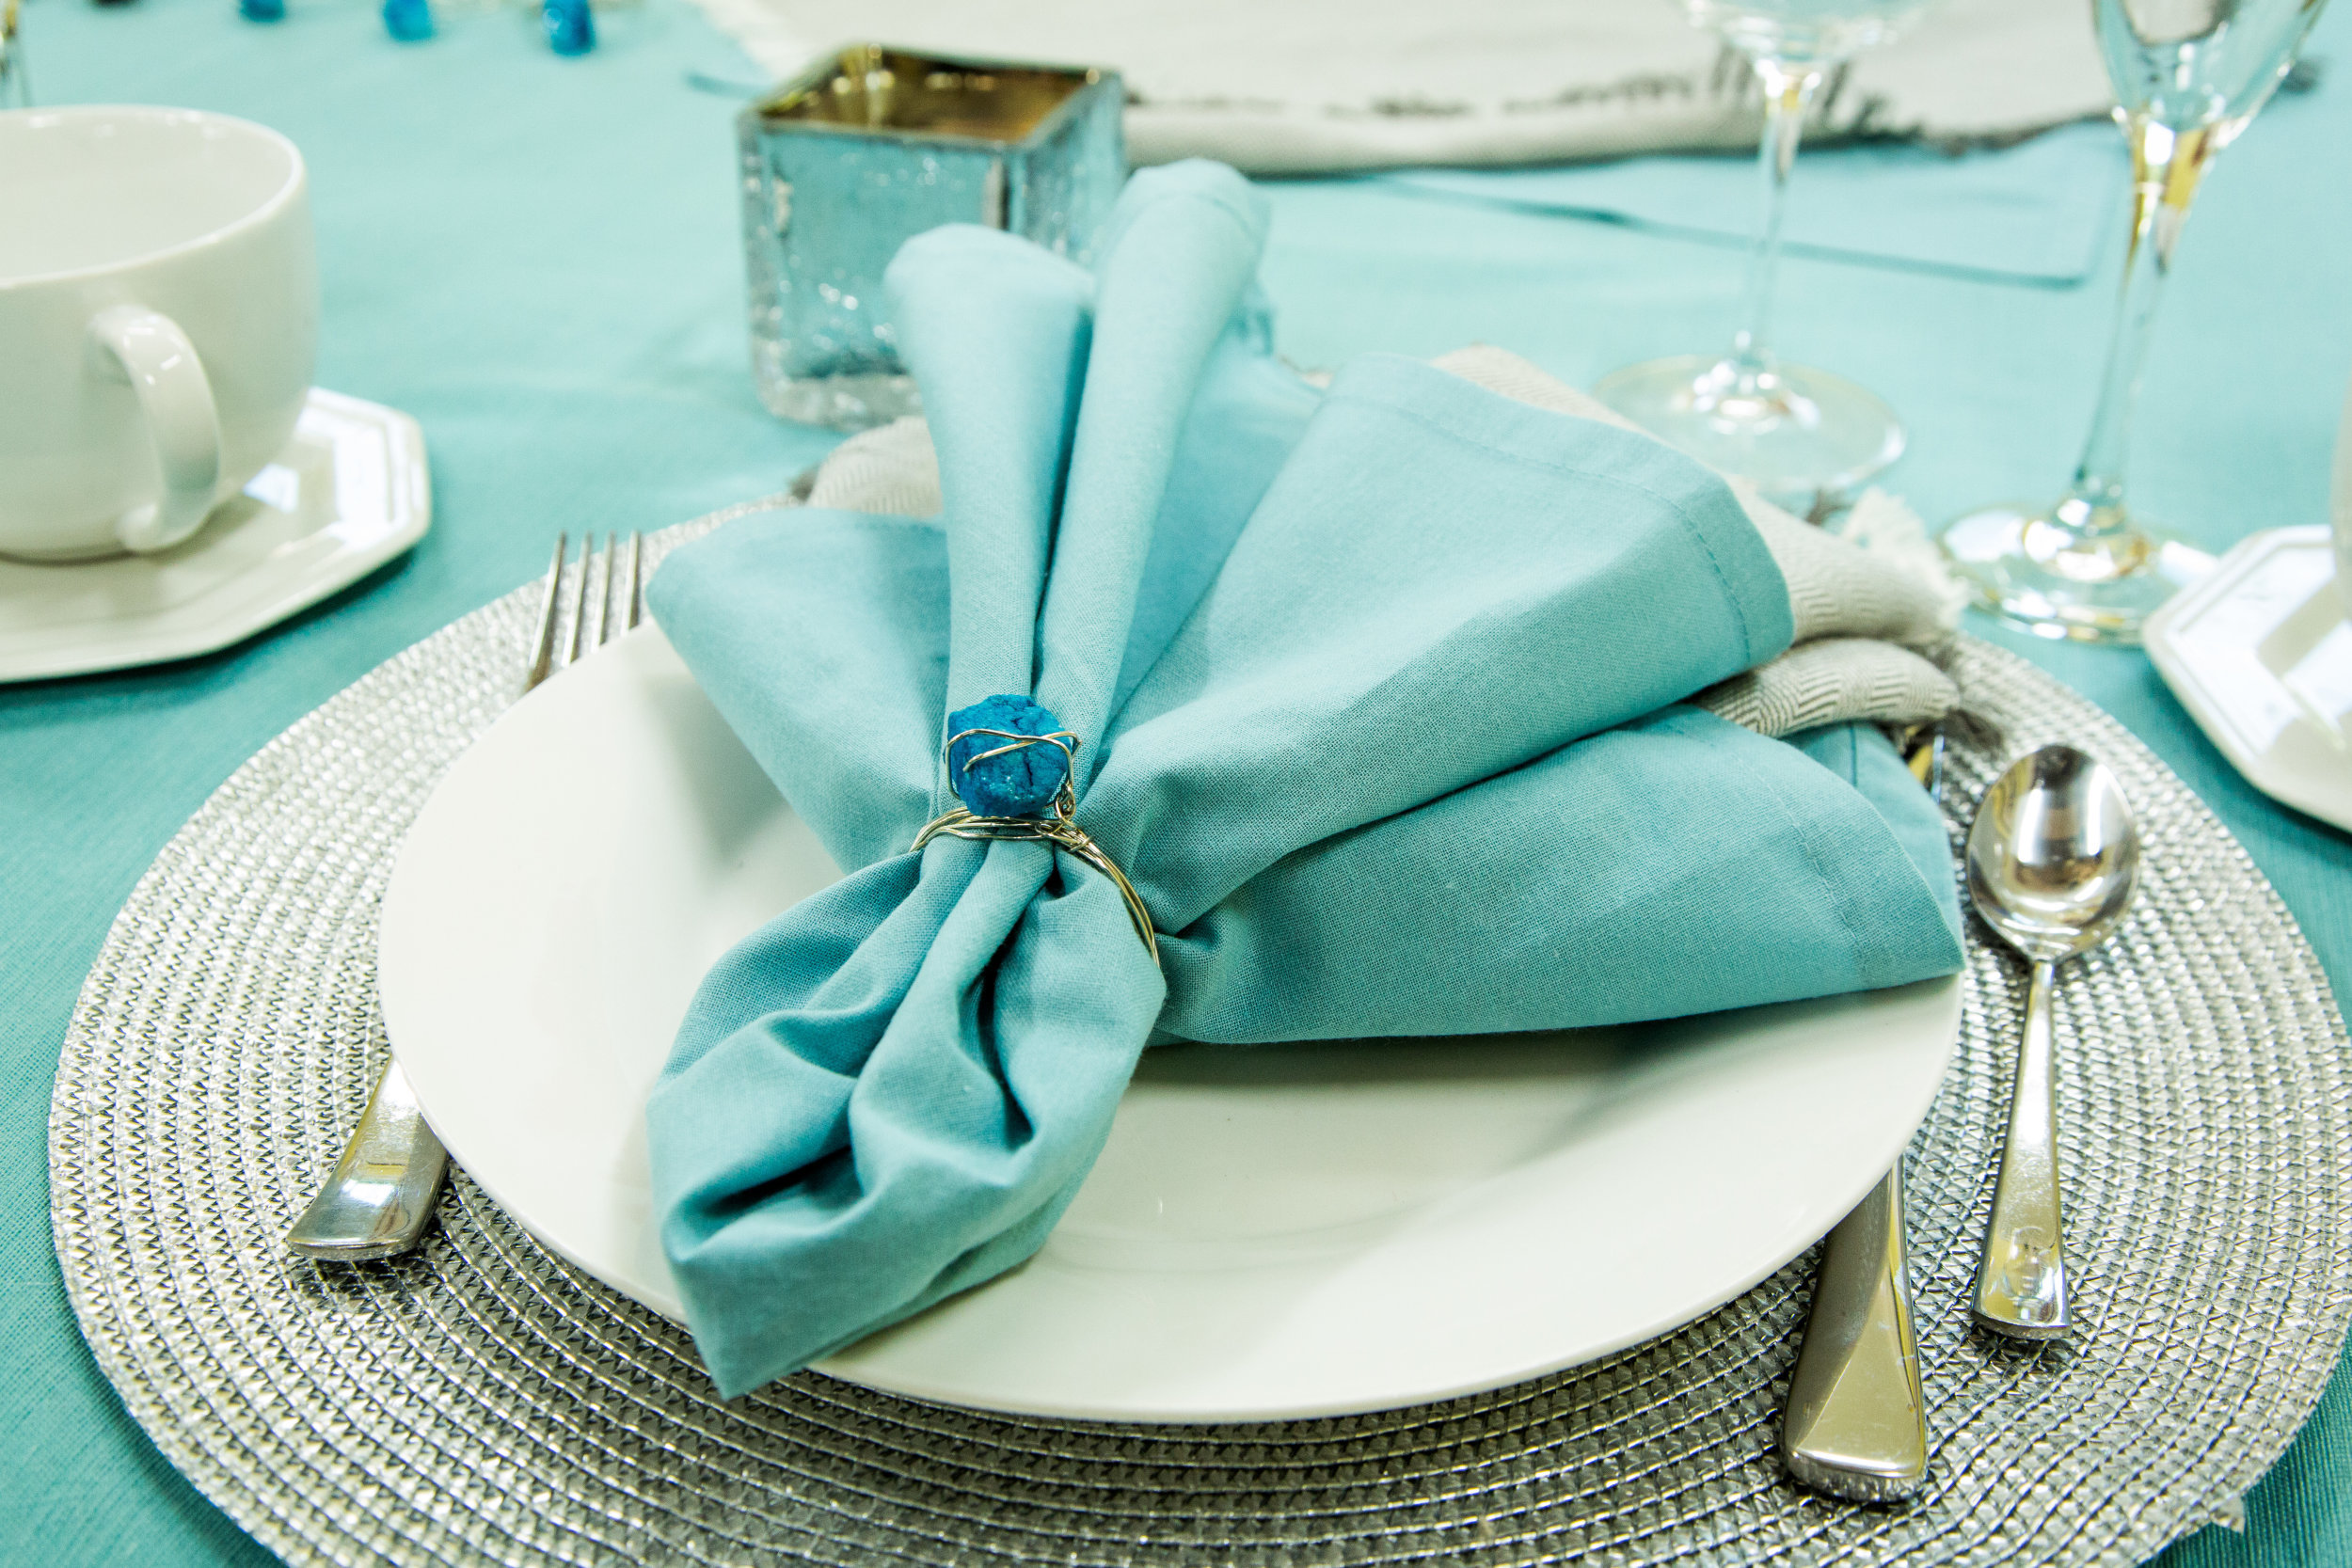 How To - Home & Family: DIY Napkin Rings | Hallmark Channel